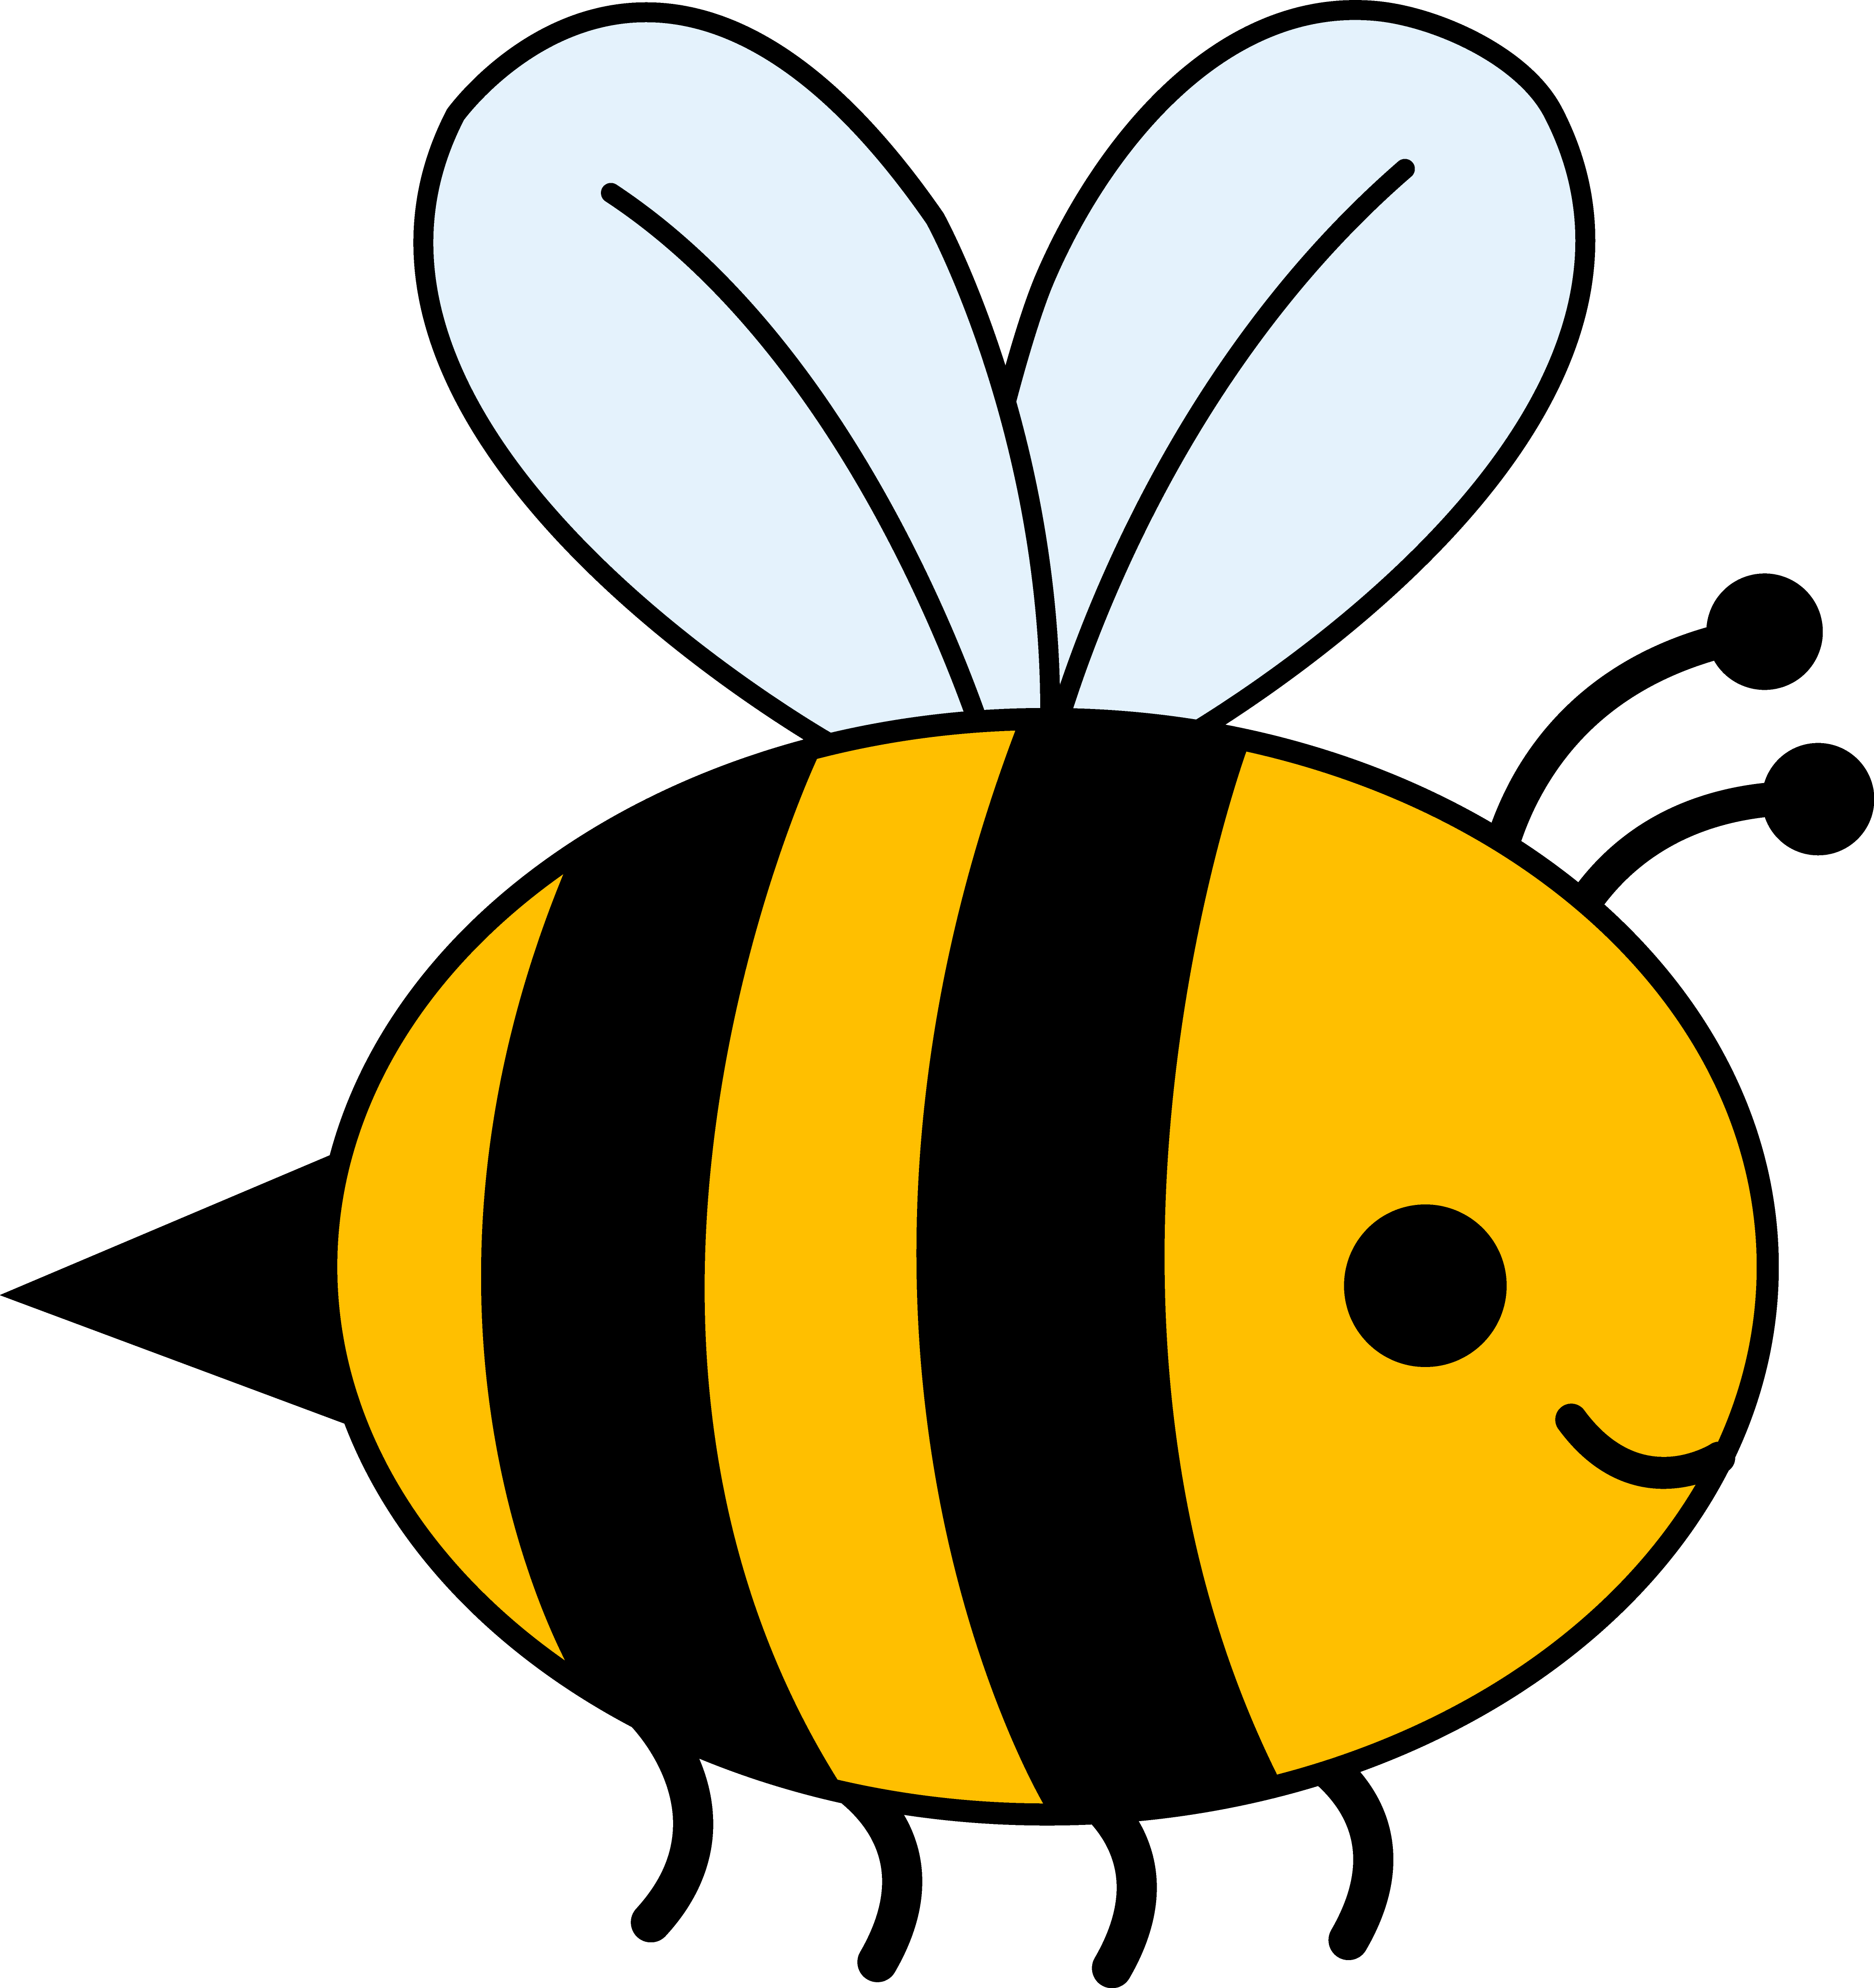 Bumble Bee Drawing Png Free Bumble Bee Drawing Png Transparent Images 143763 Pngio